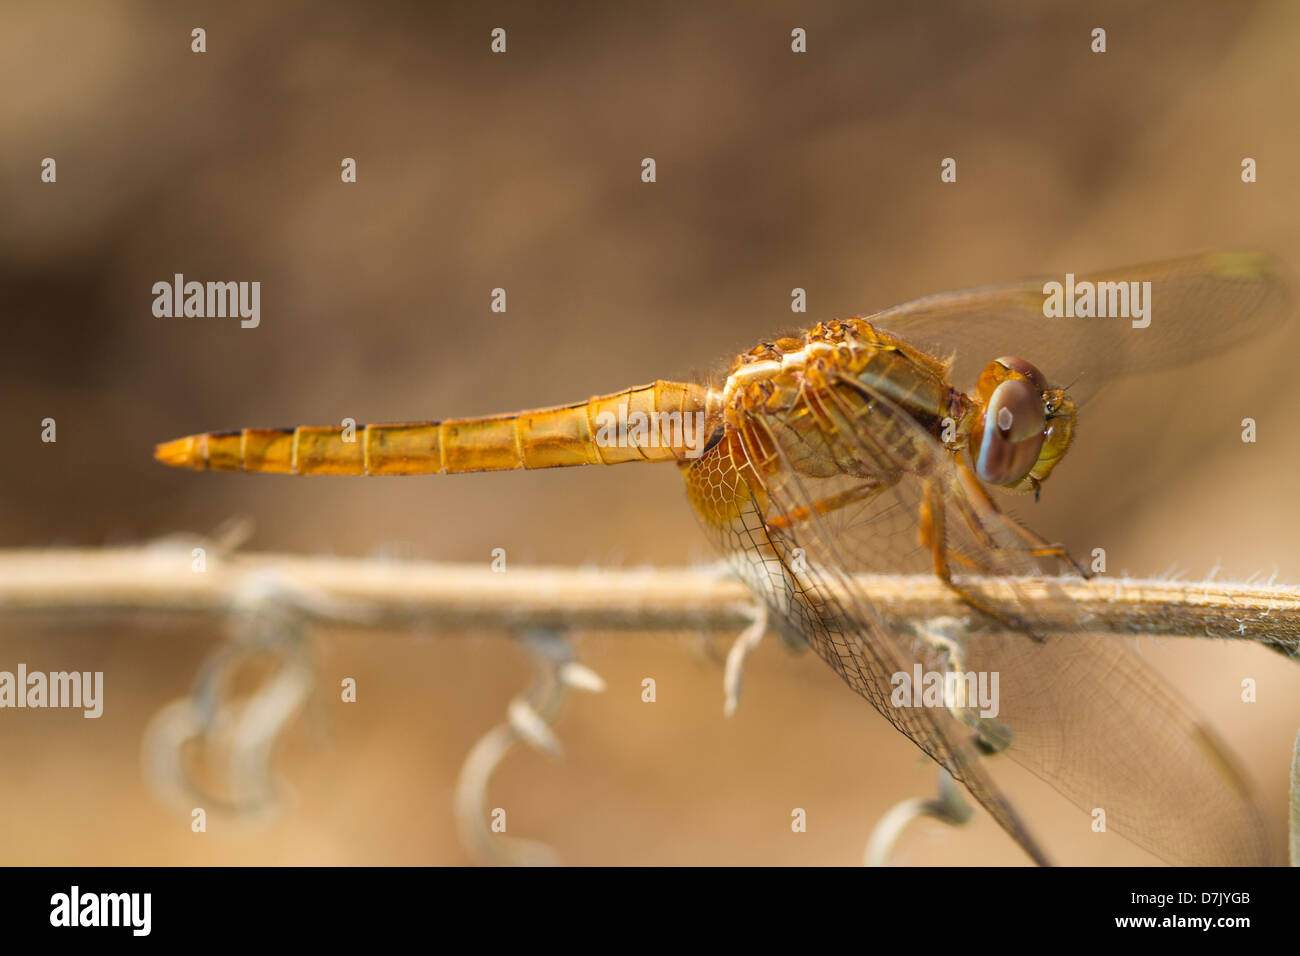 Close view detail of the beautiful Scarlet Darter (Crocothemis erythraea) dragonfly. Stock Photo